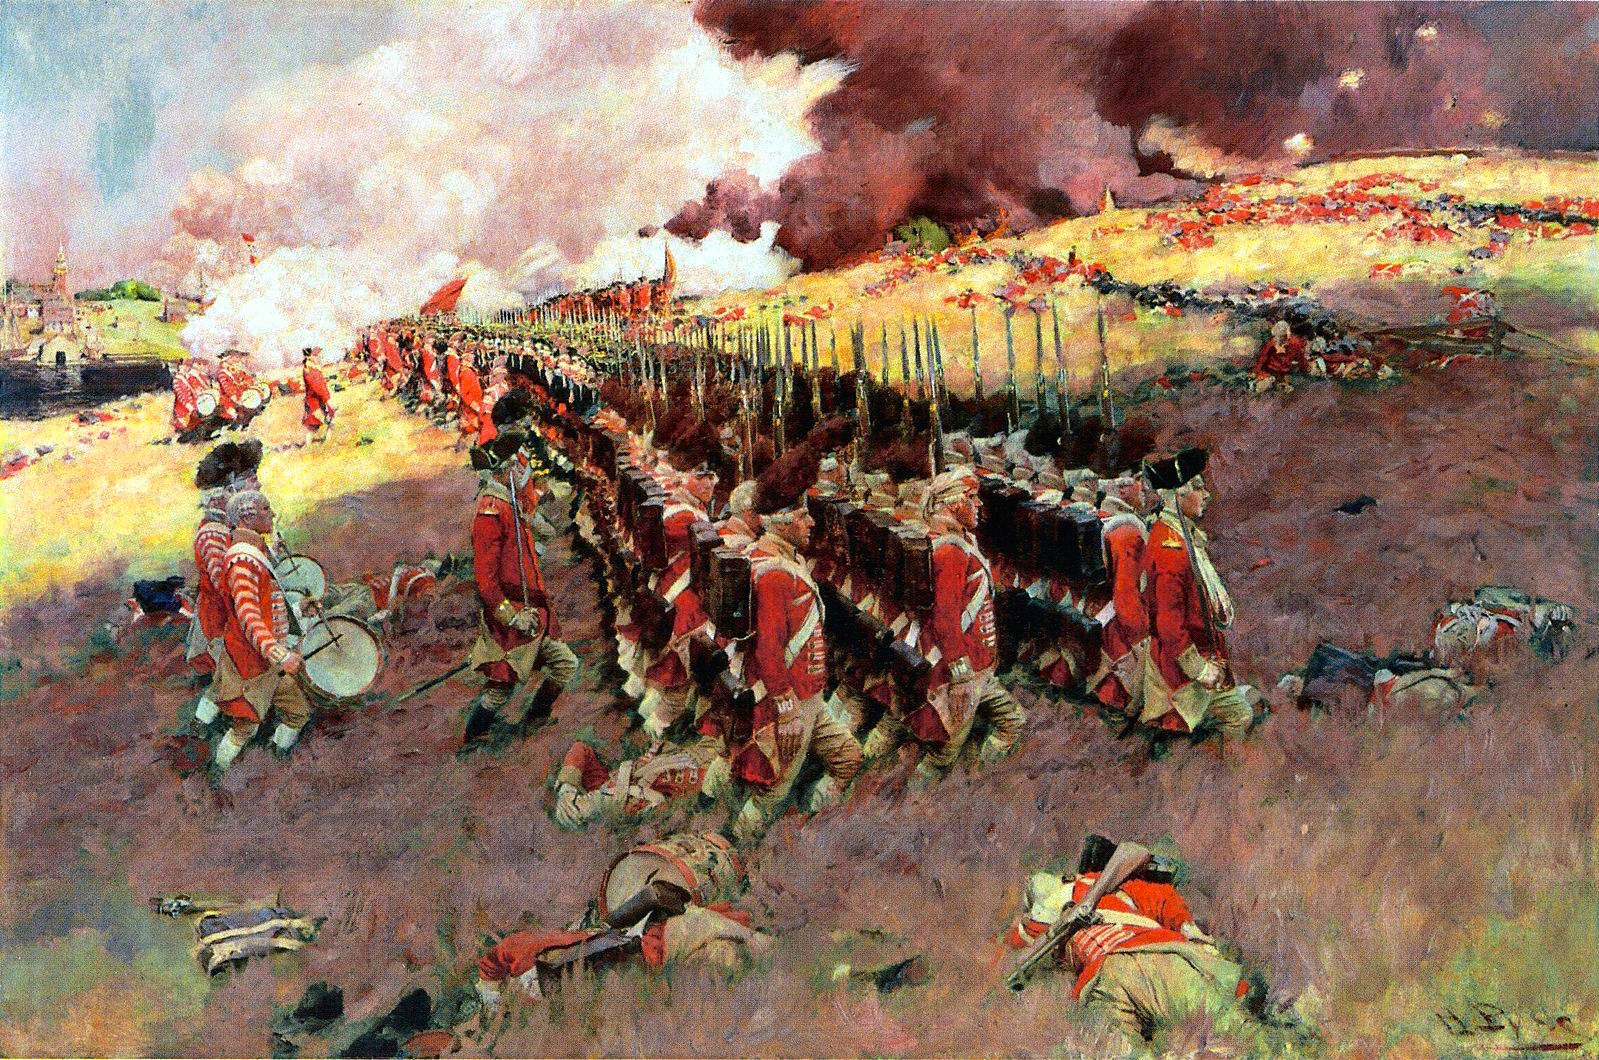 The Battle of Bunker Hill, by Howard Pyle, 1897, published in Scribner's Magazine in February 1898.